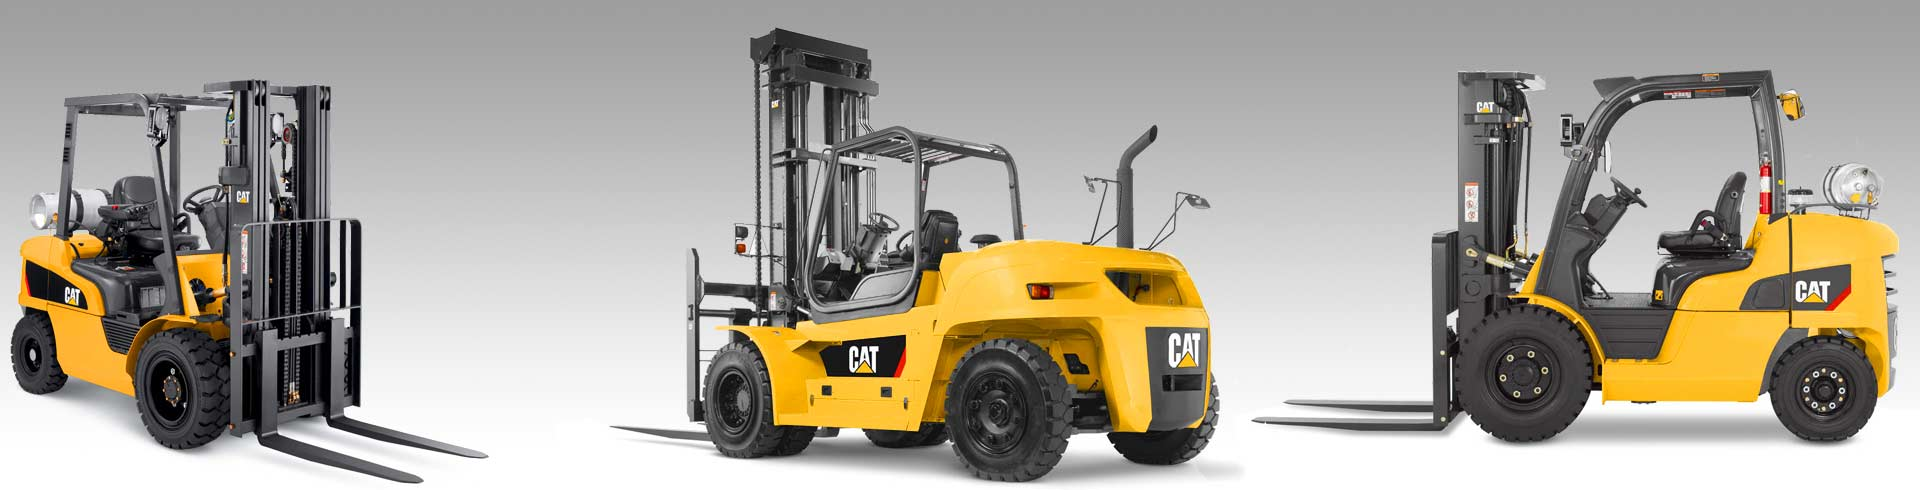 footer-forklifts-01